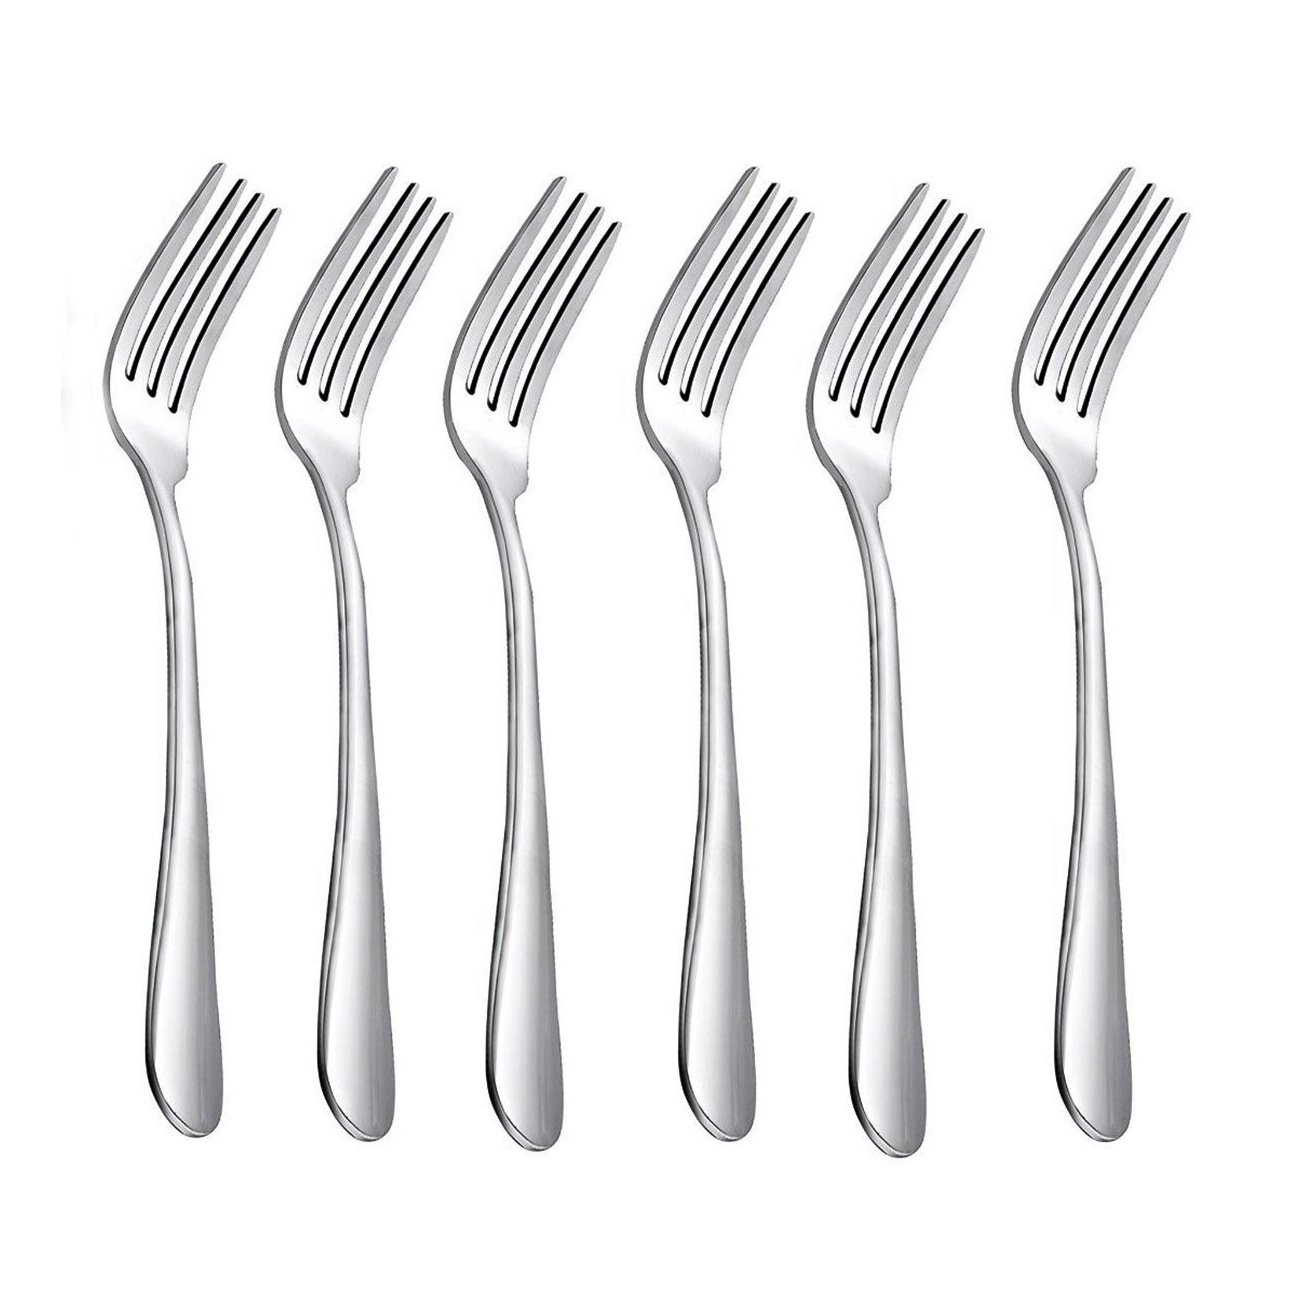 HornTide 6-Piece Dinner Forks Set 4 Tines Table Fork Flatware Stainless Steel Mirror Polishing 7-Inch 18cm